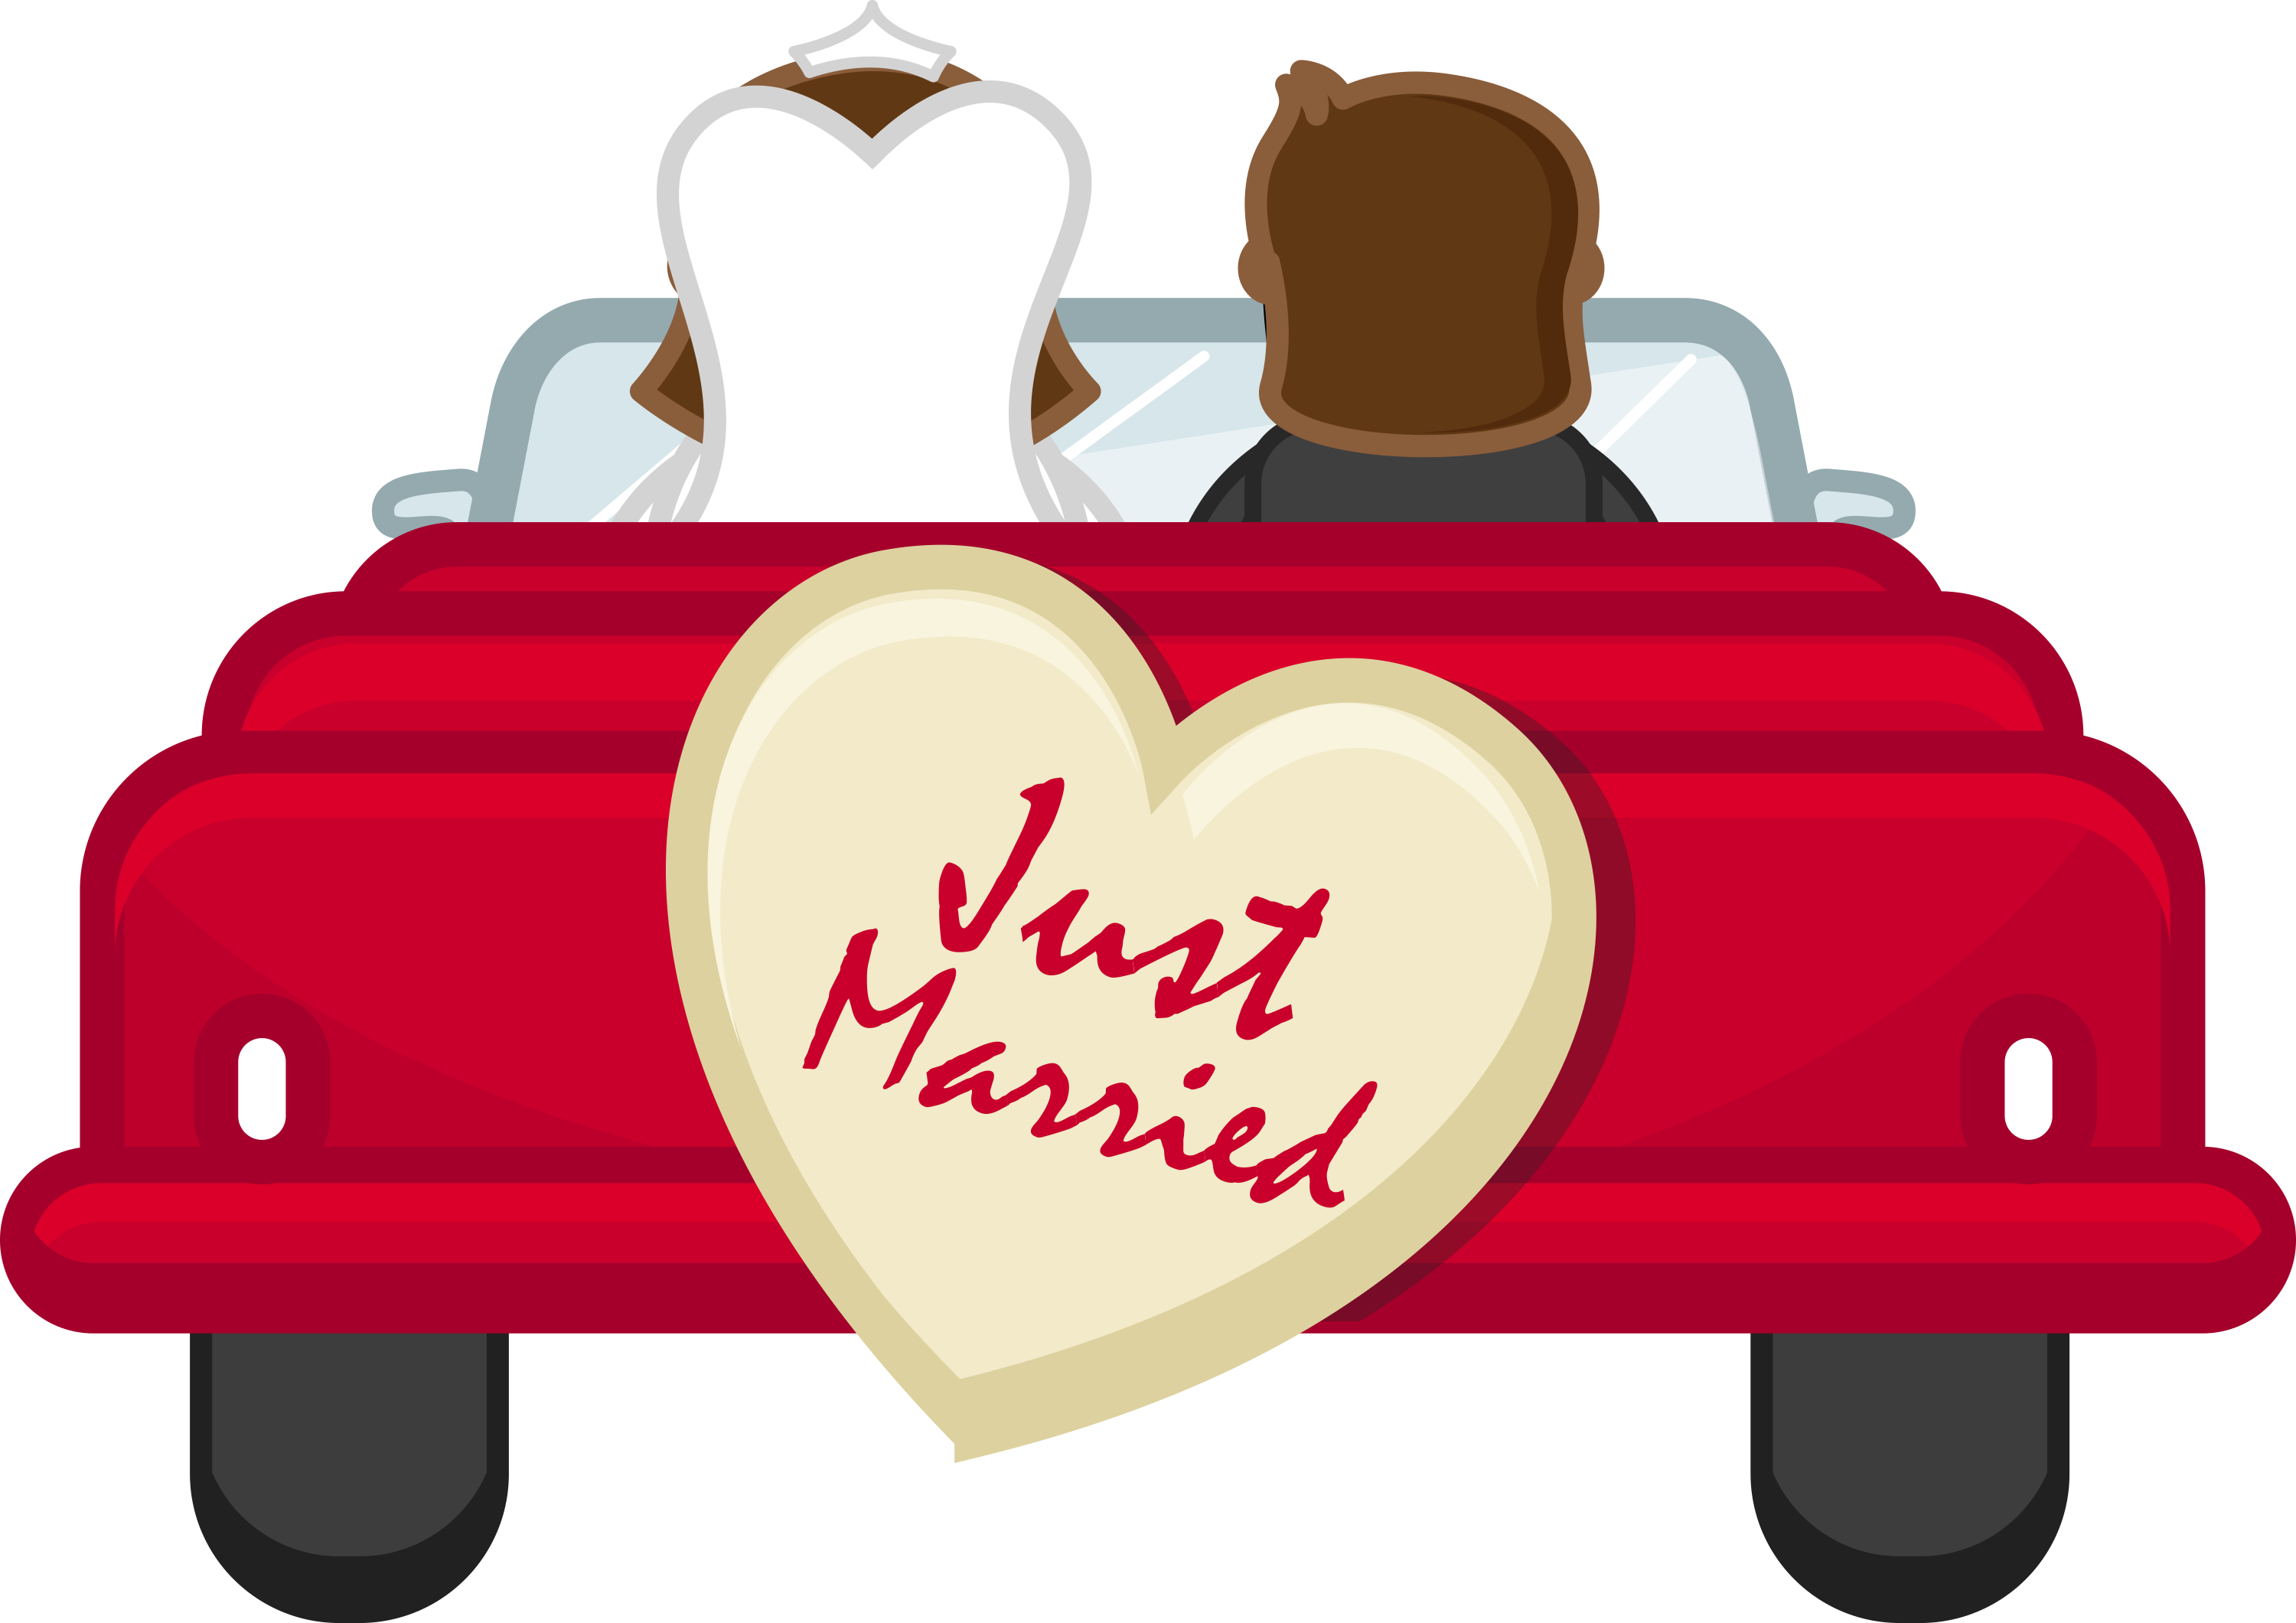 PNG Just Married - 68682